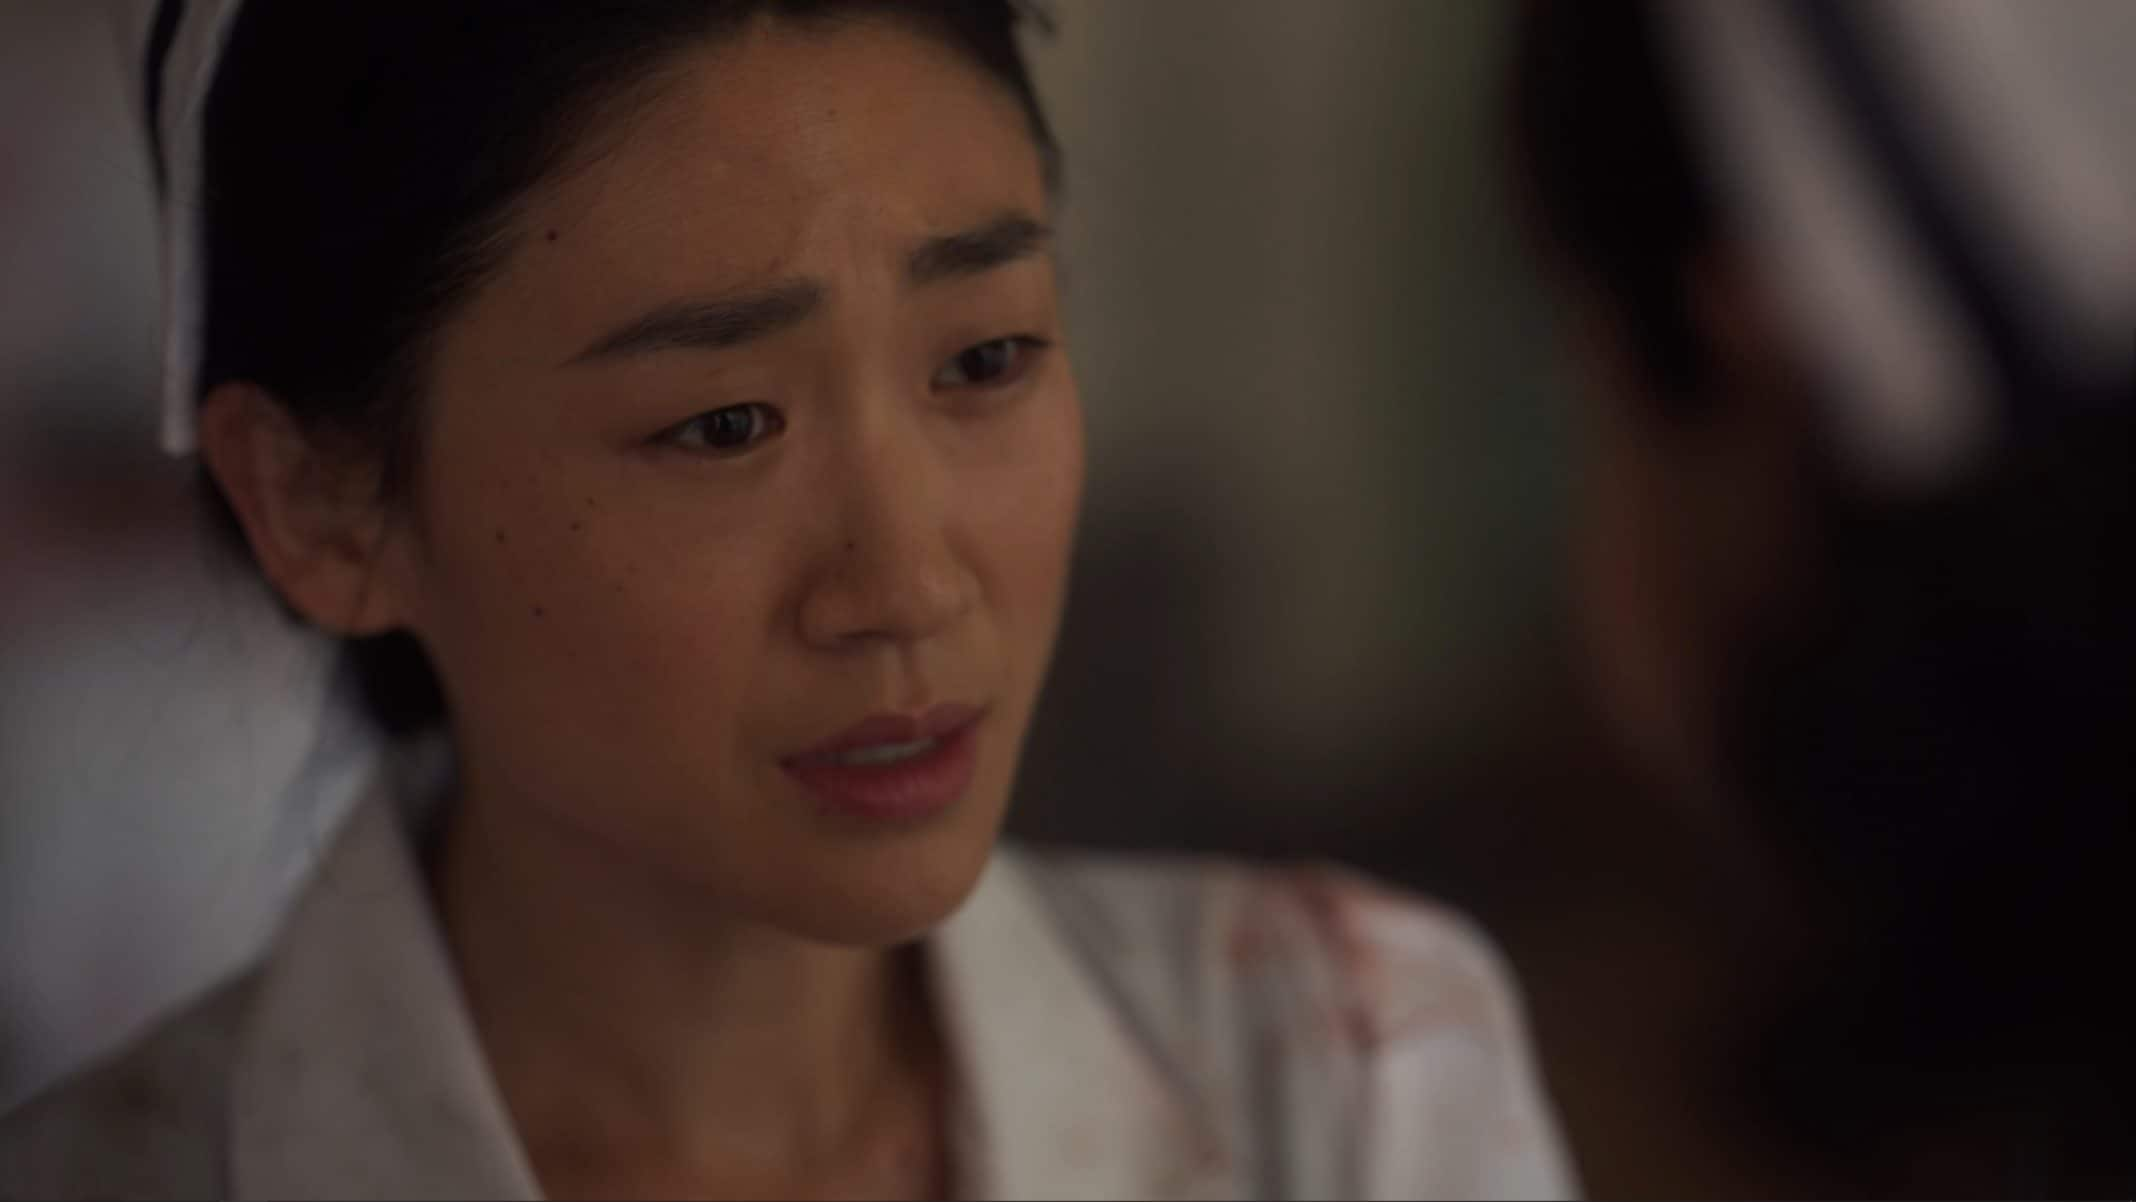 Young-Ja Unni (Prisca Kim) looking worried.